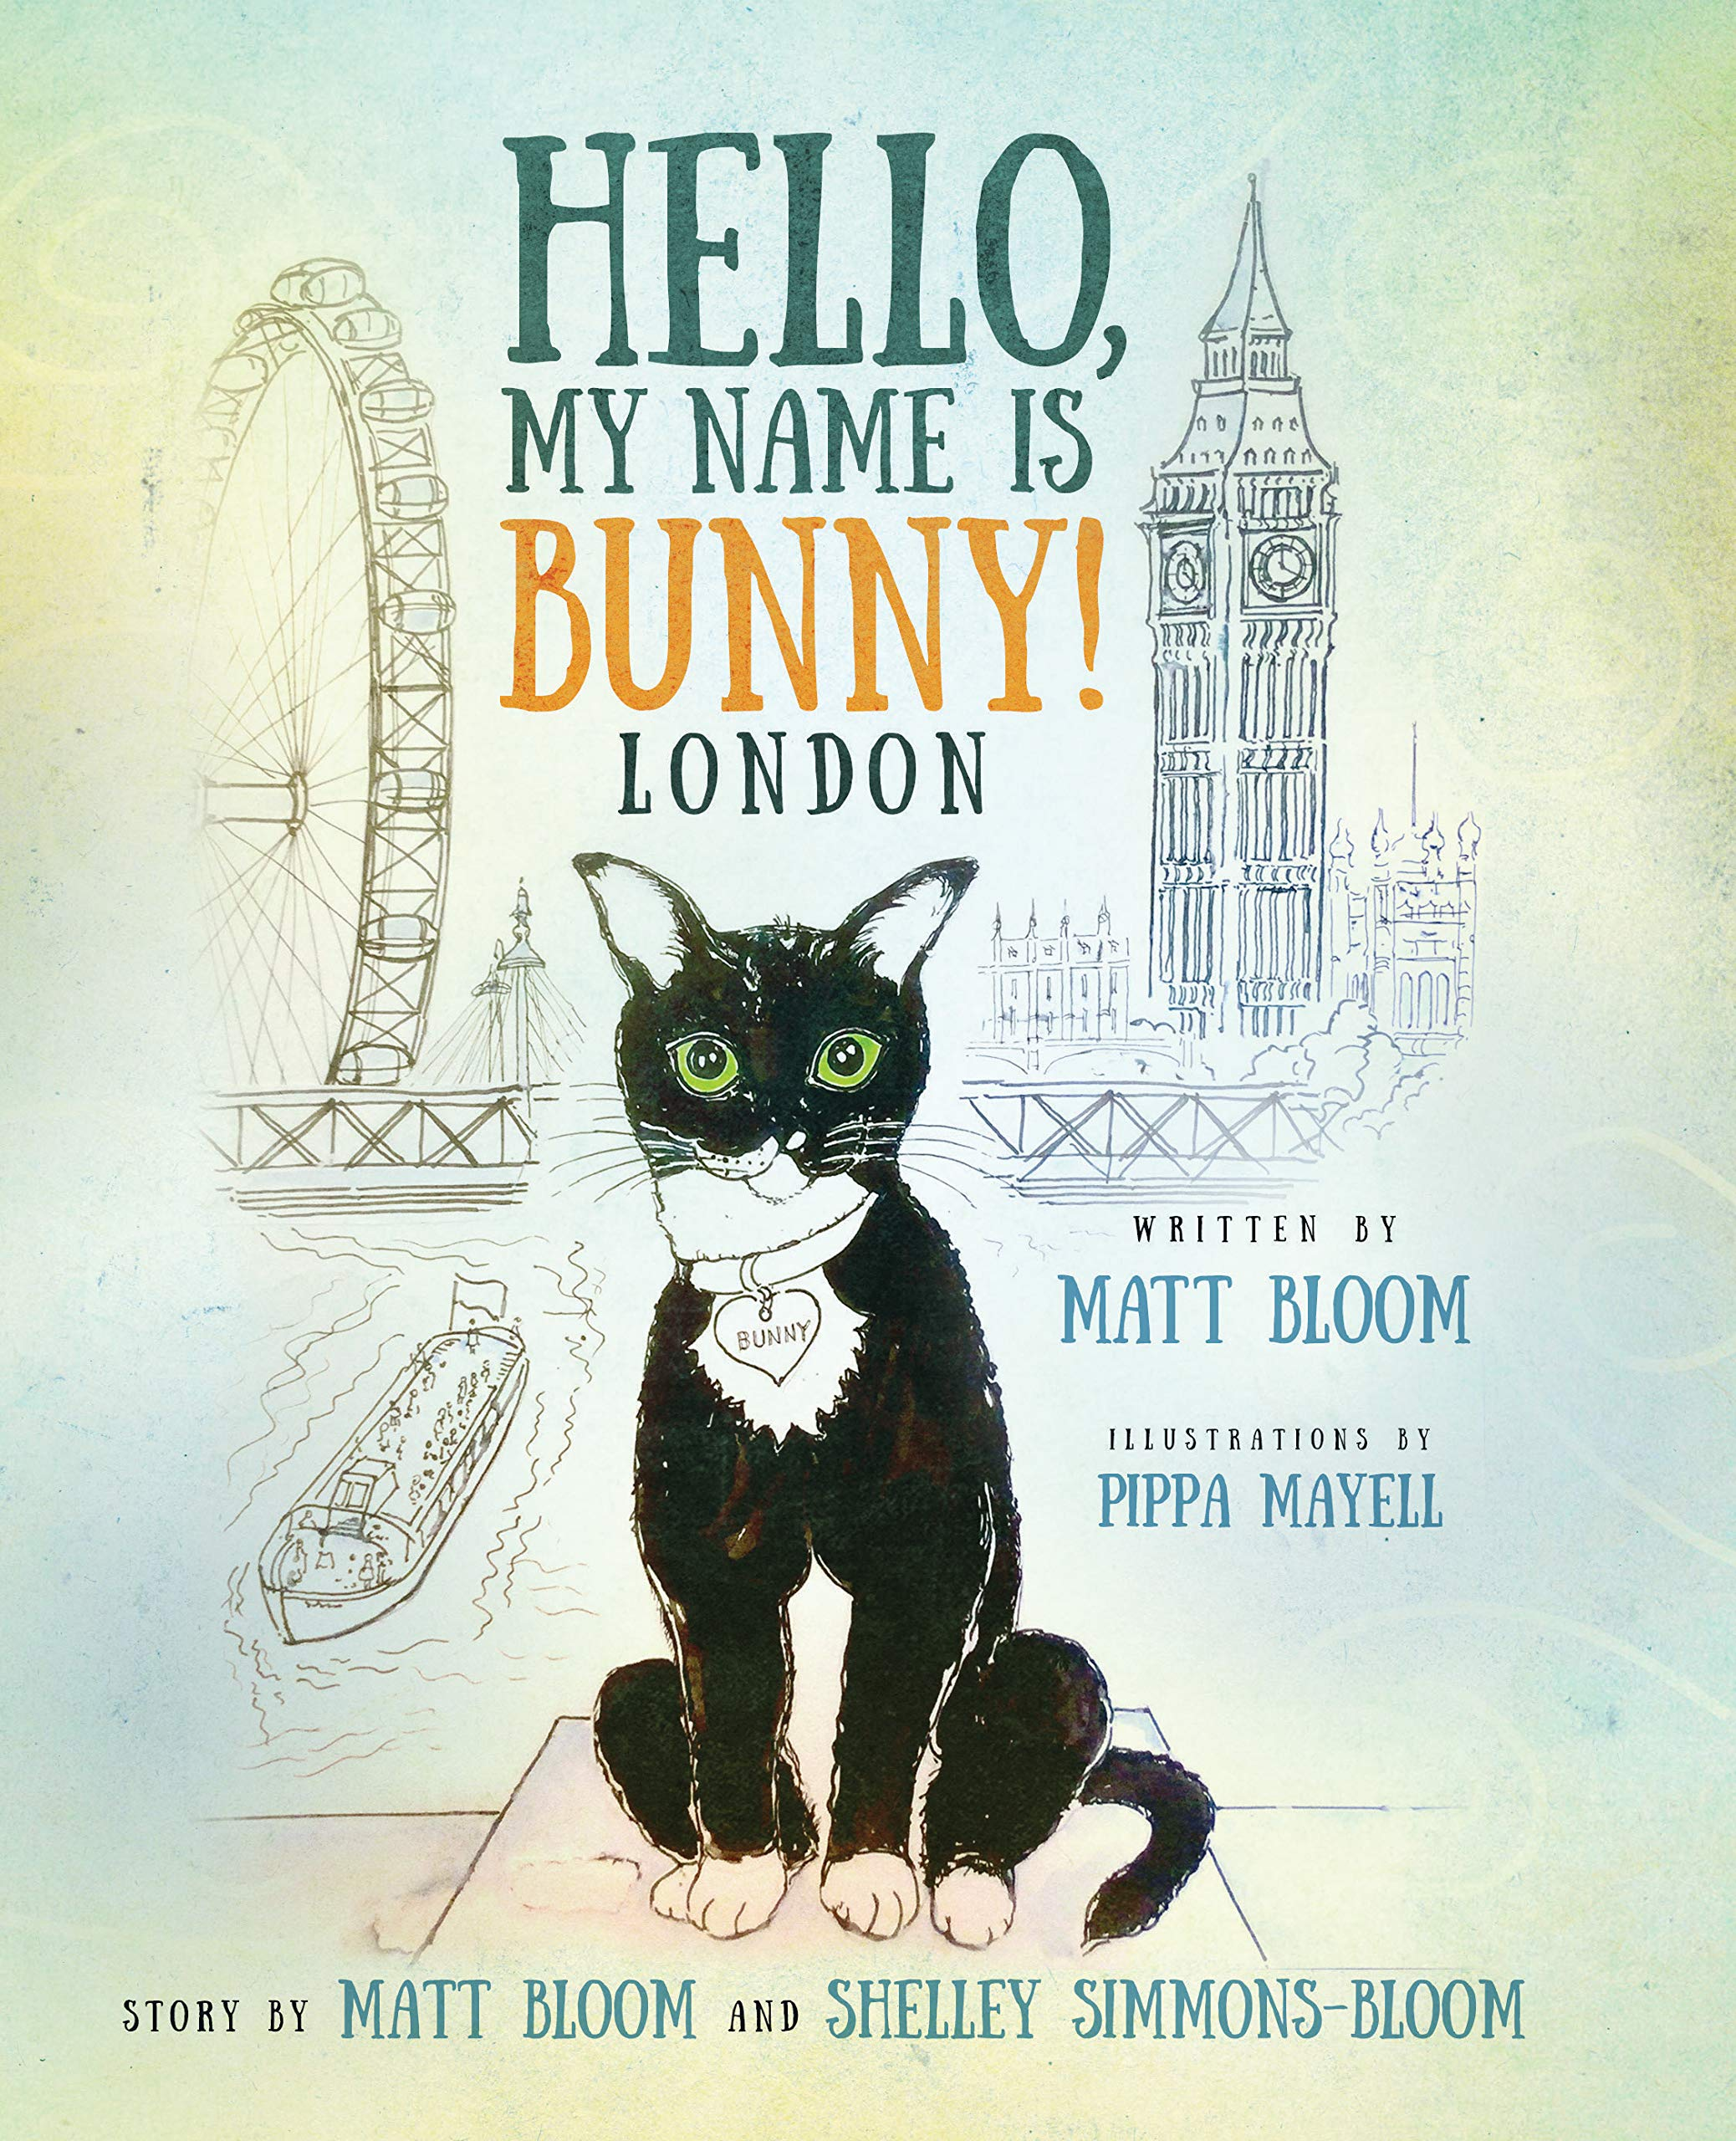 Hello, My Name is Bunny! London